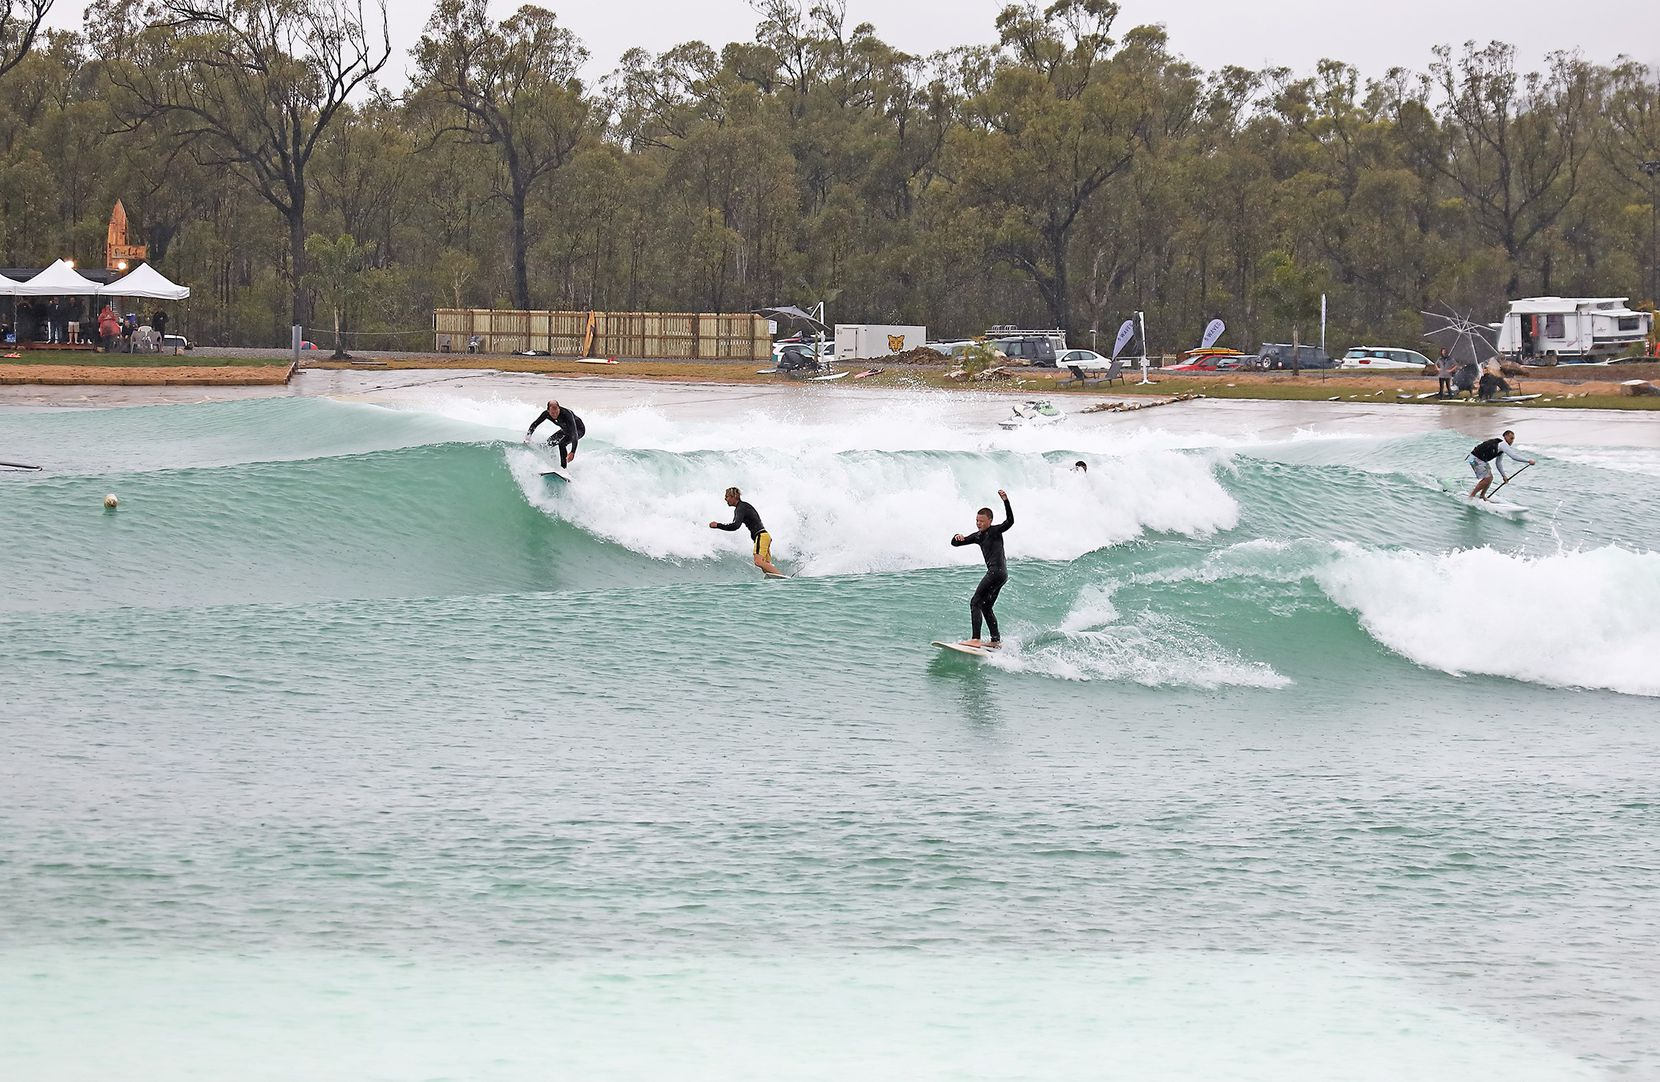 Surf Lakes has built a prototype wave pool at home in Australia.